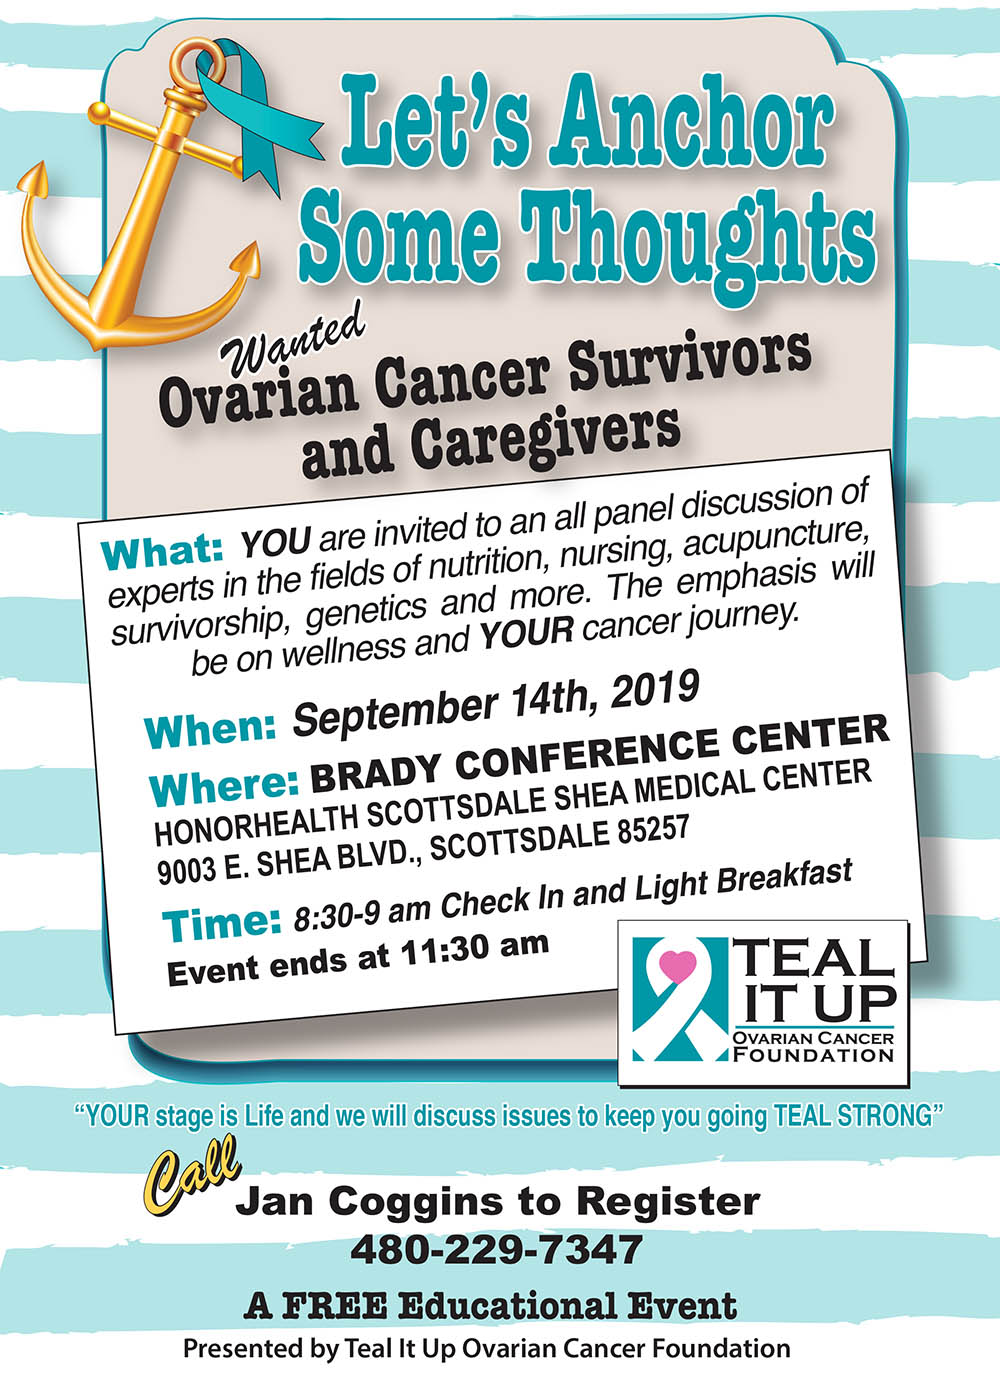 Ovarian Cancer Survivors summit